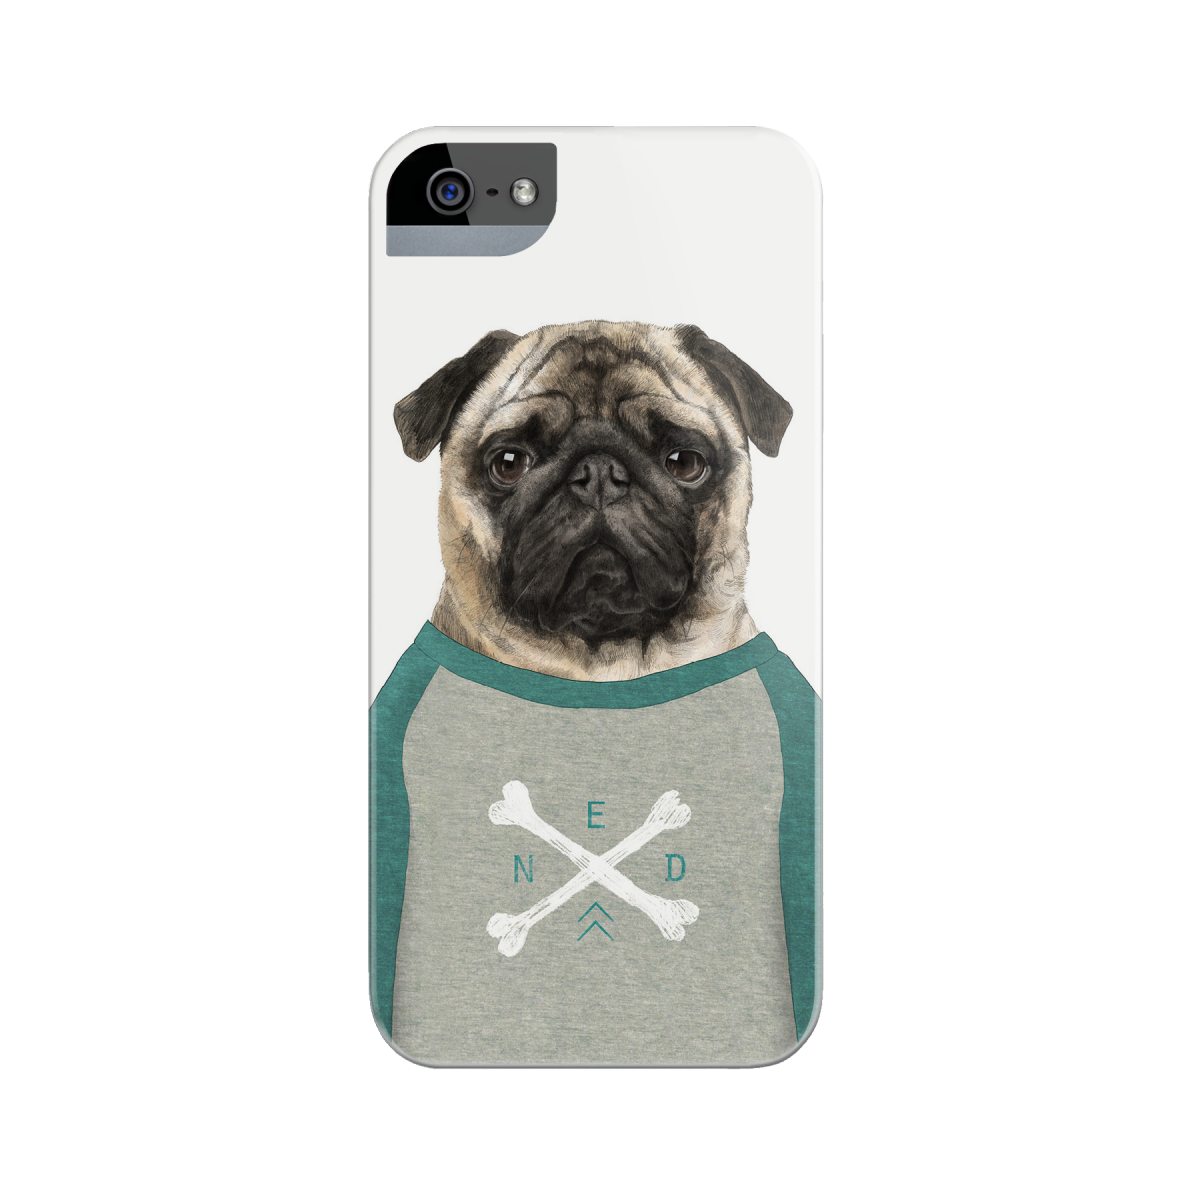 Ned Phone Case   Phone Cases   Accessories   Ohh Deer